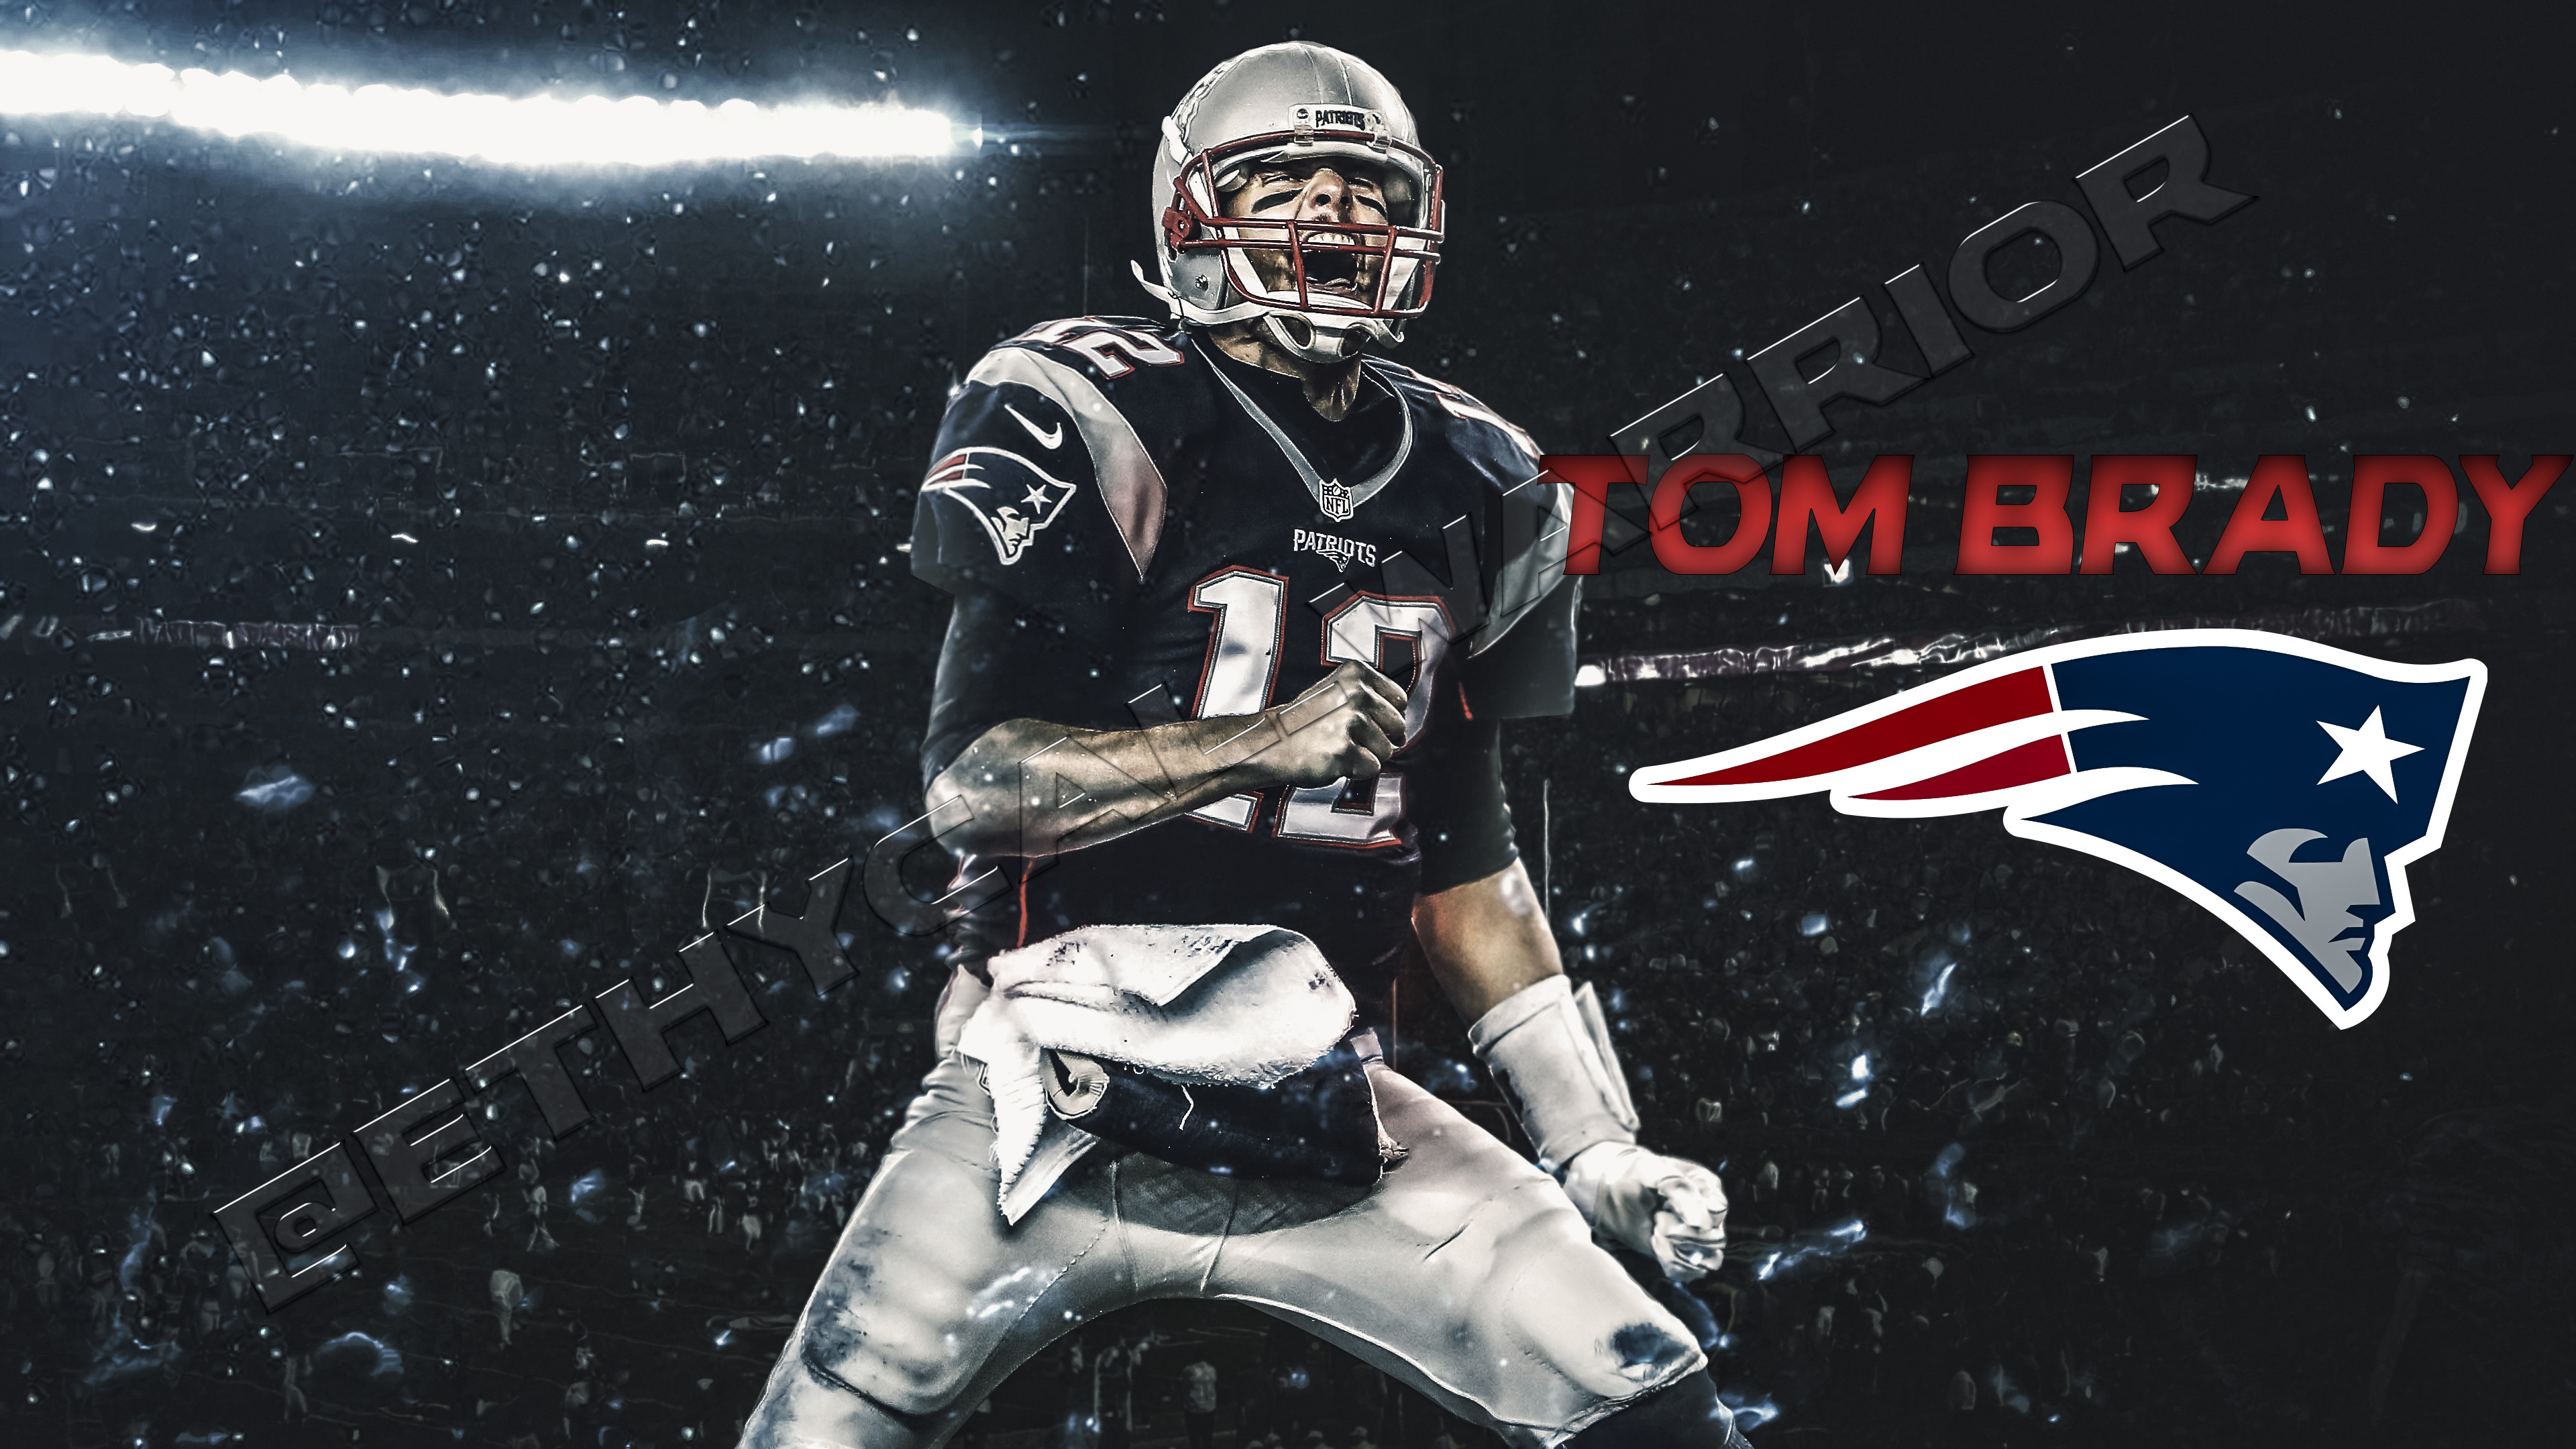 Patriots Wallpaper Hd Tom Brady Wallpapers 70 Images